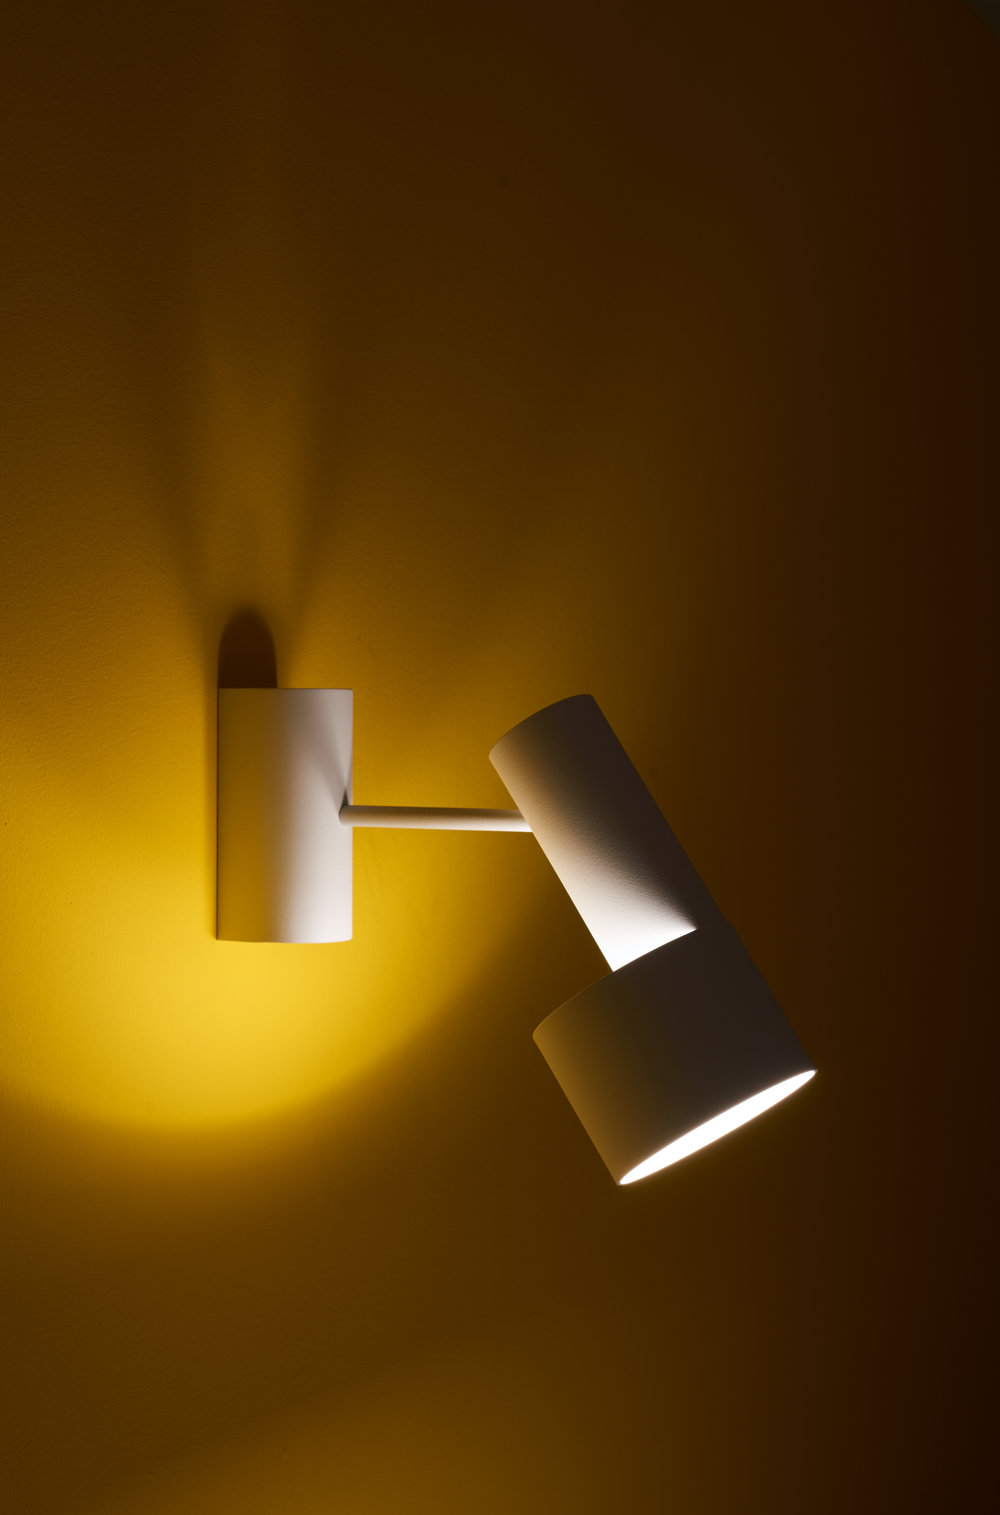 Tangent_Table_Lamp_Frederik_Kurzweg_Design_Studio_07.jpg